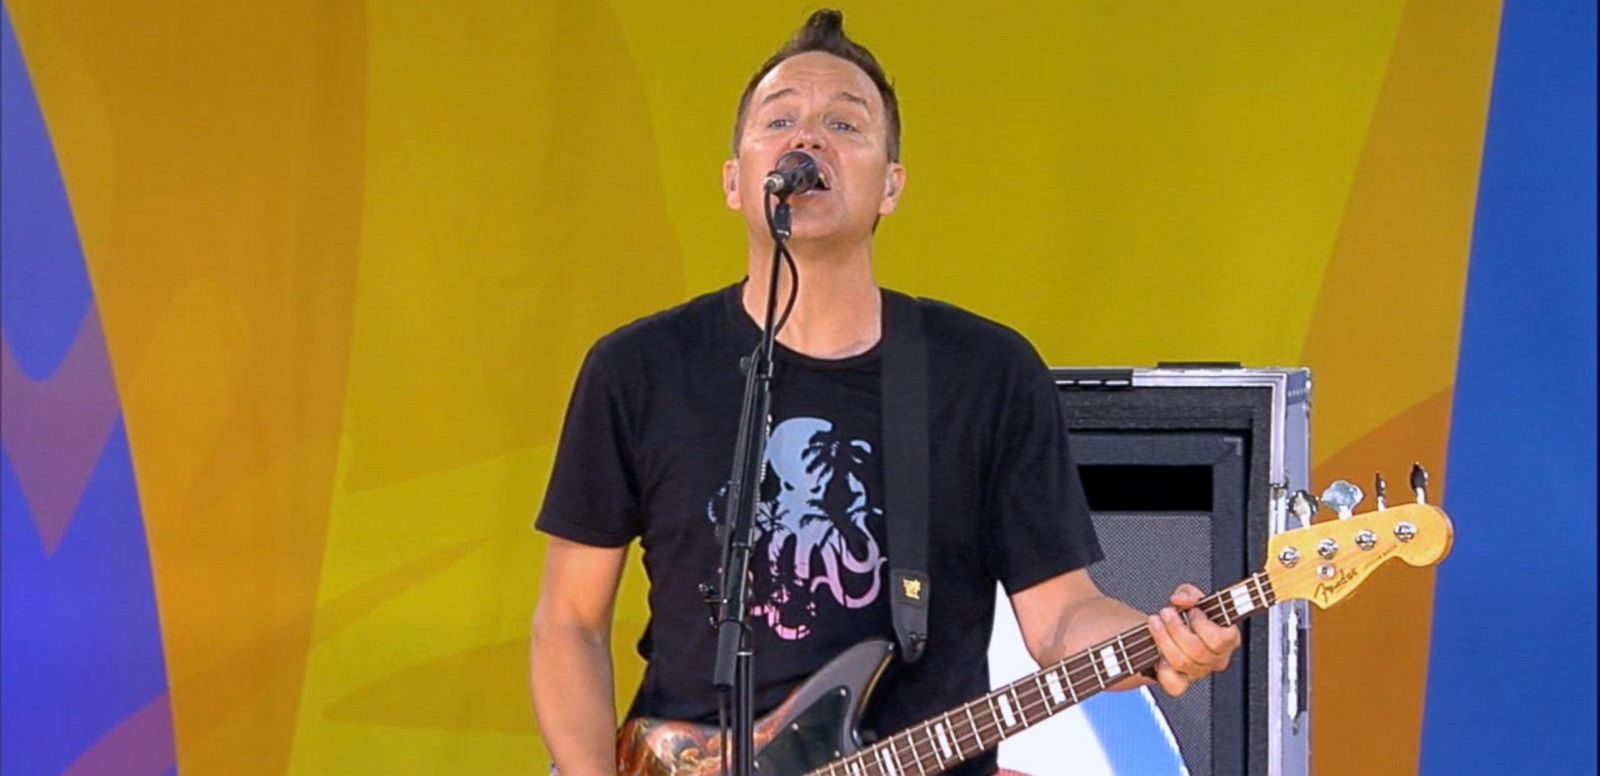 VIDEO: 'GMA' Summer Concert Series: Blink-182 Sings 'Bored to Death'